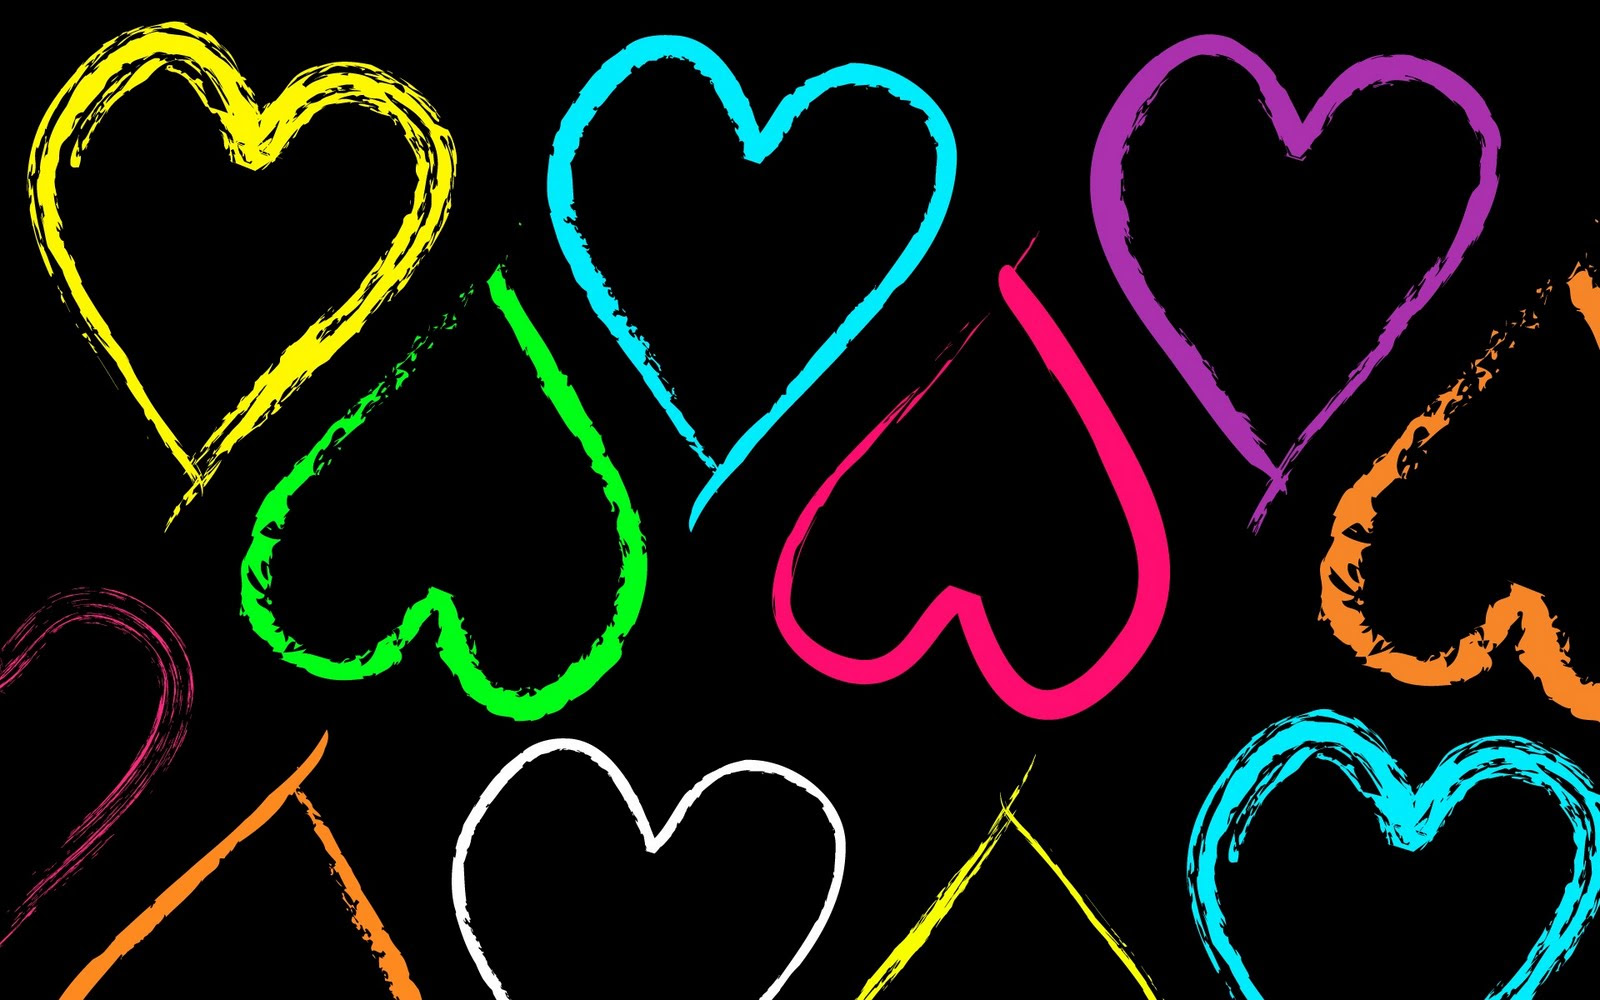 Love Wallpapers Free Android Apps On Google Play 1600x1000